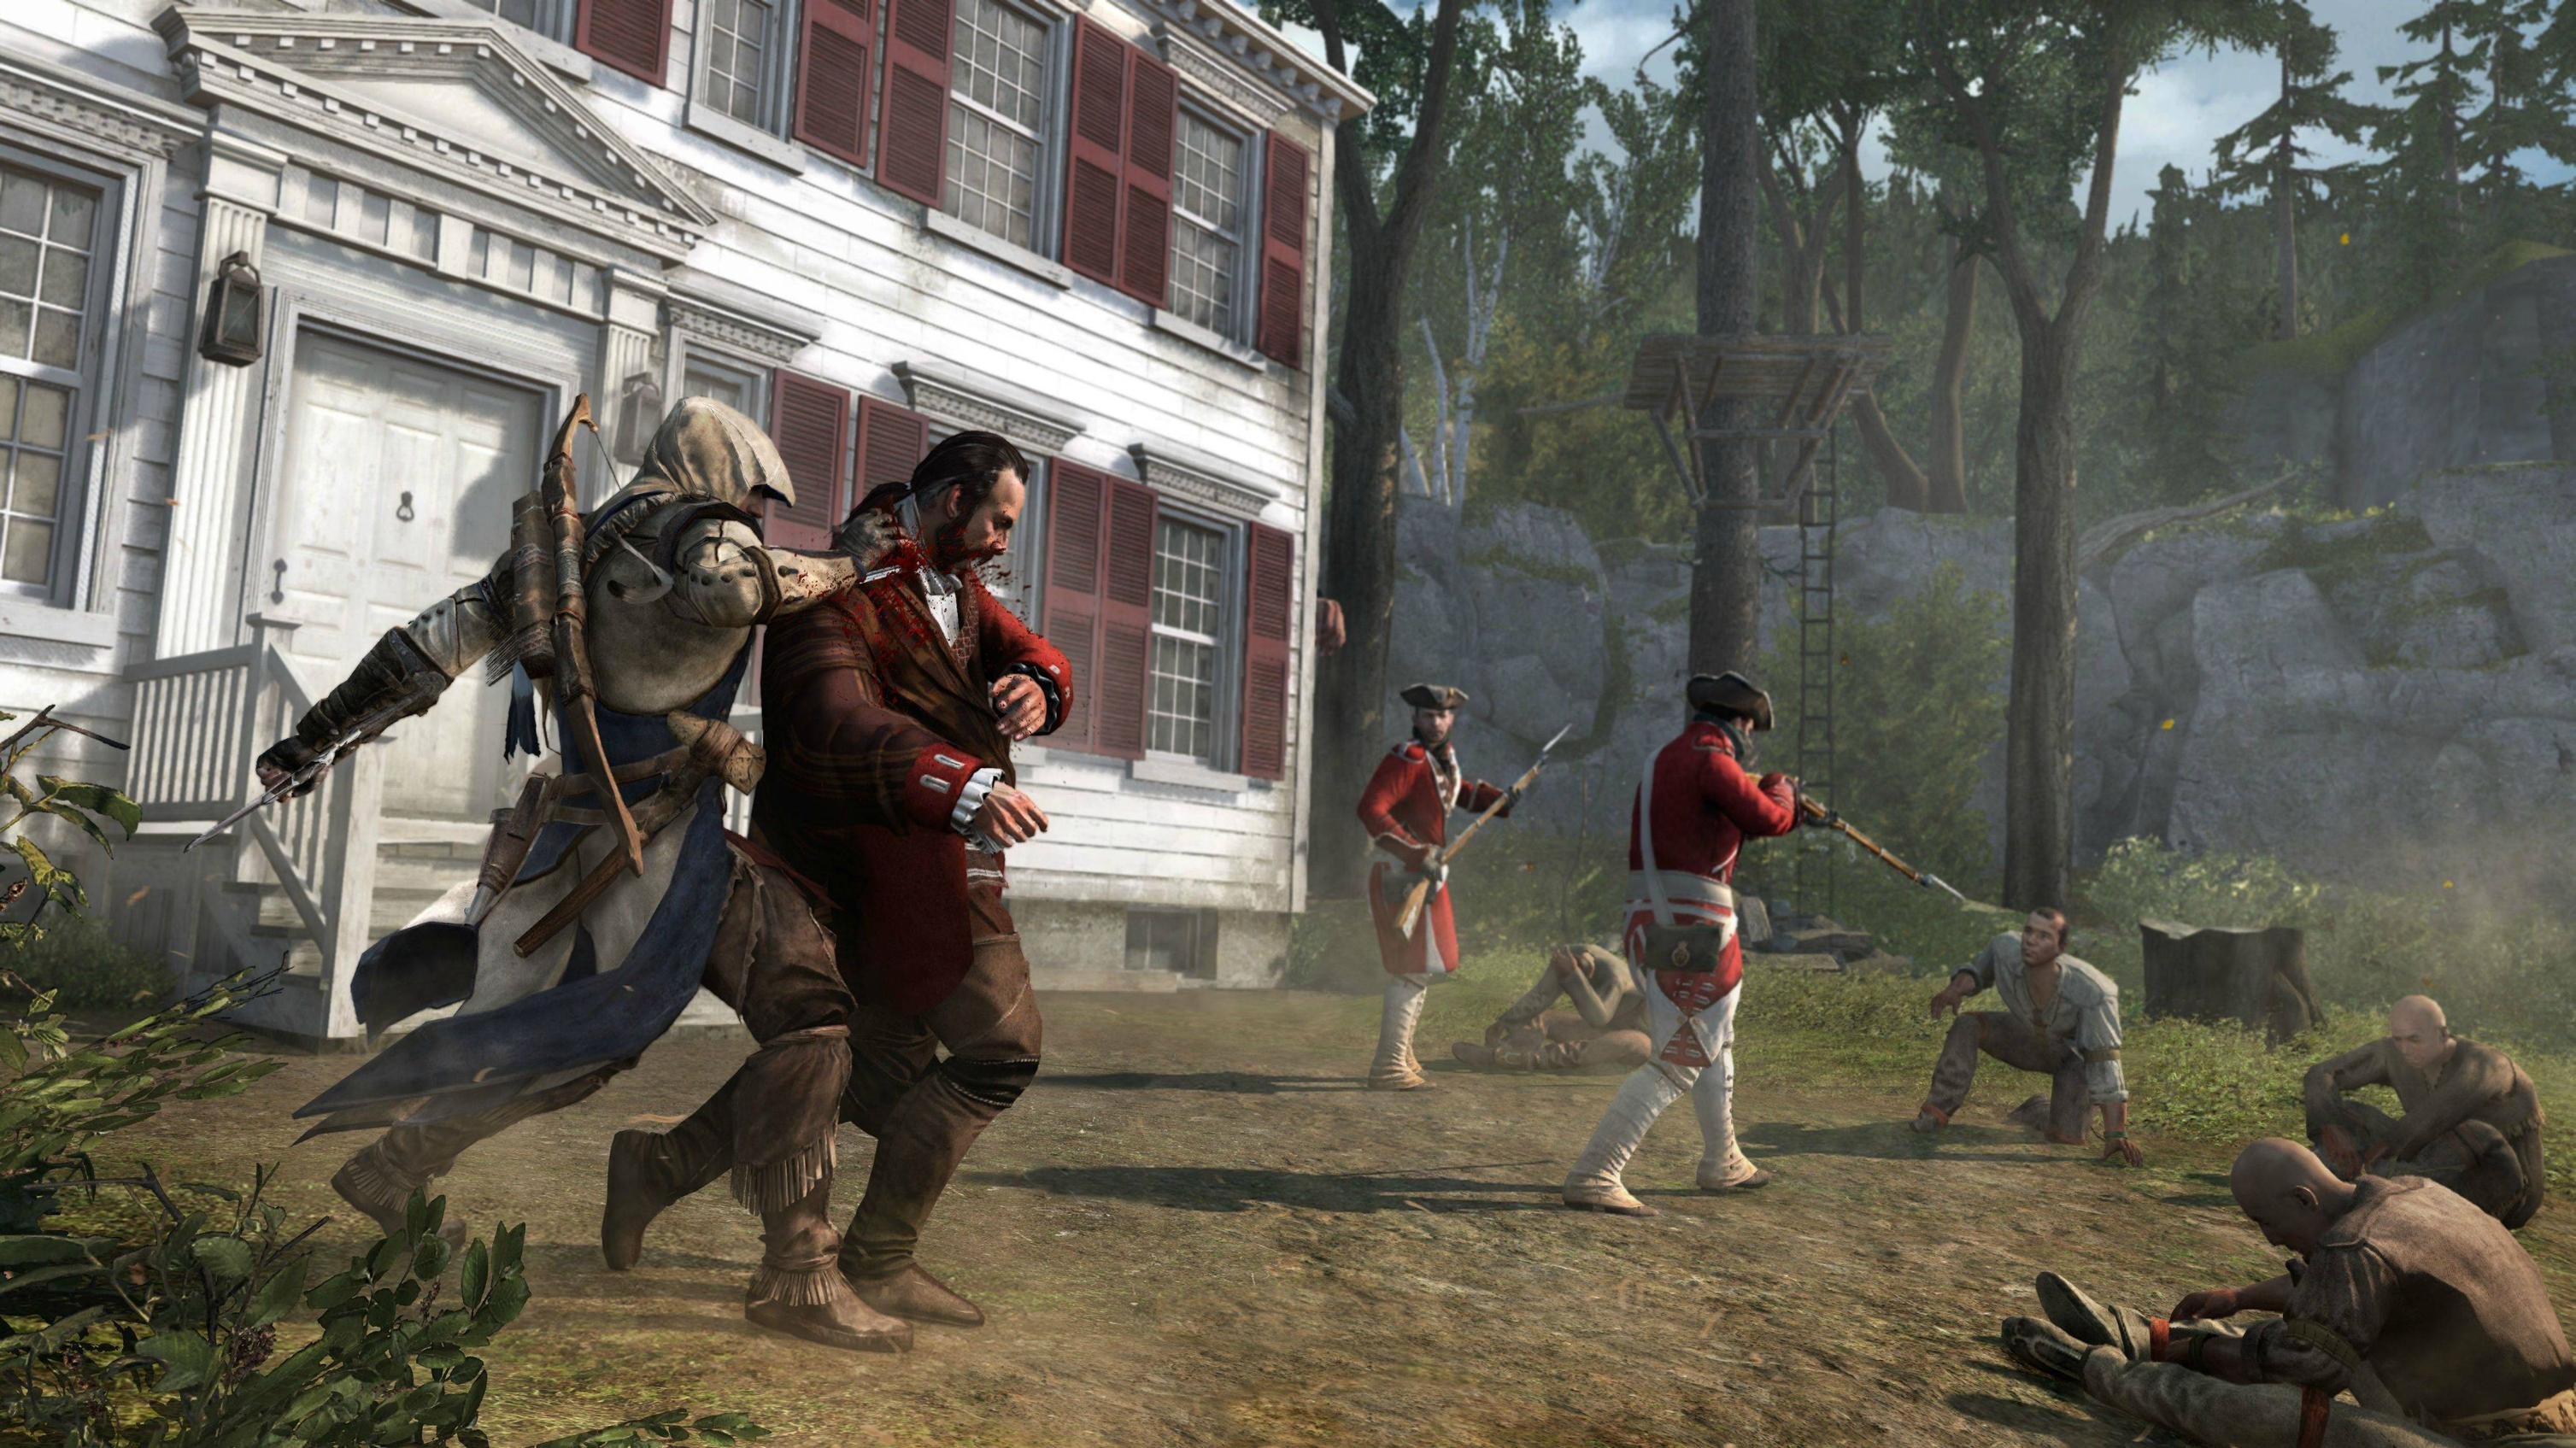 Assassin's Creed 3 Screenshots Travel Across The Colonies #24033